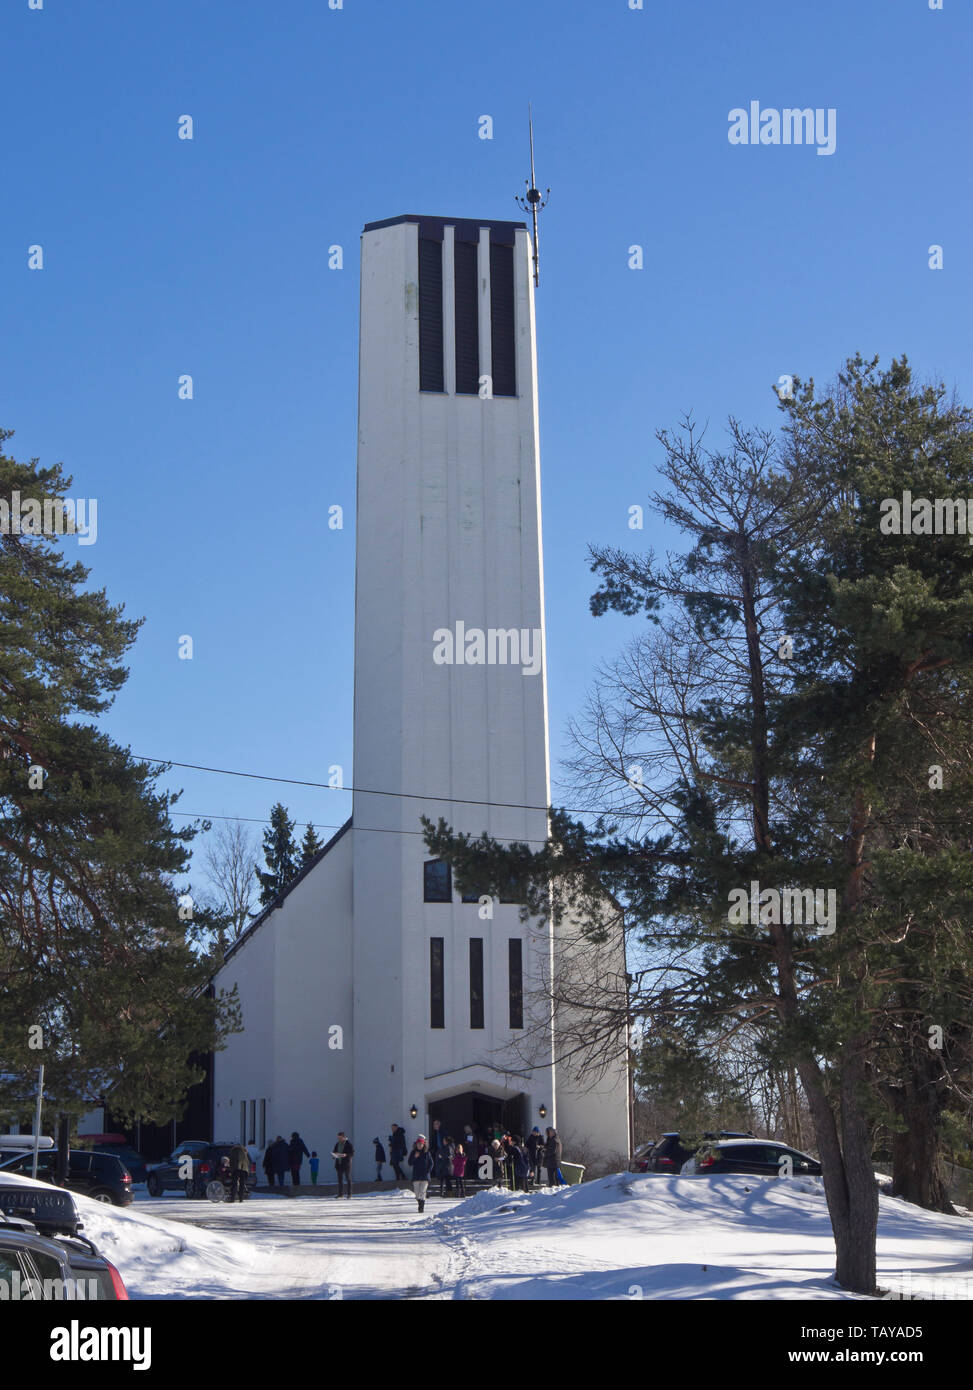 Nordberg church from 1962 in a suburb in Oslo Norway, architects Turid and Kristen Bernhoff Evensen - Stock Image